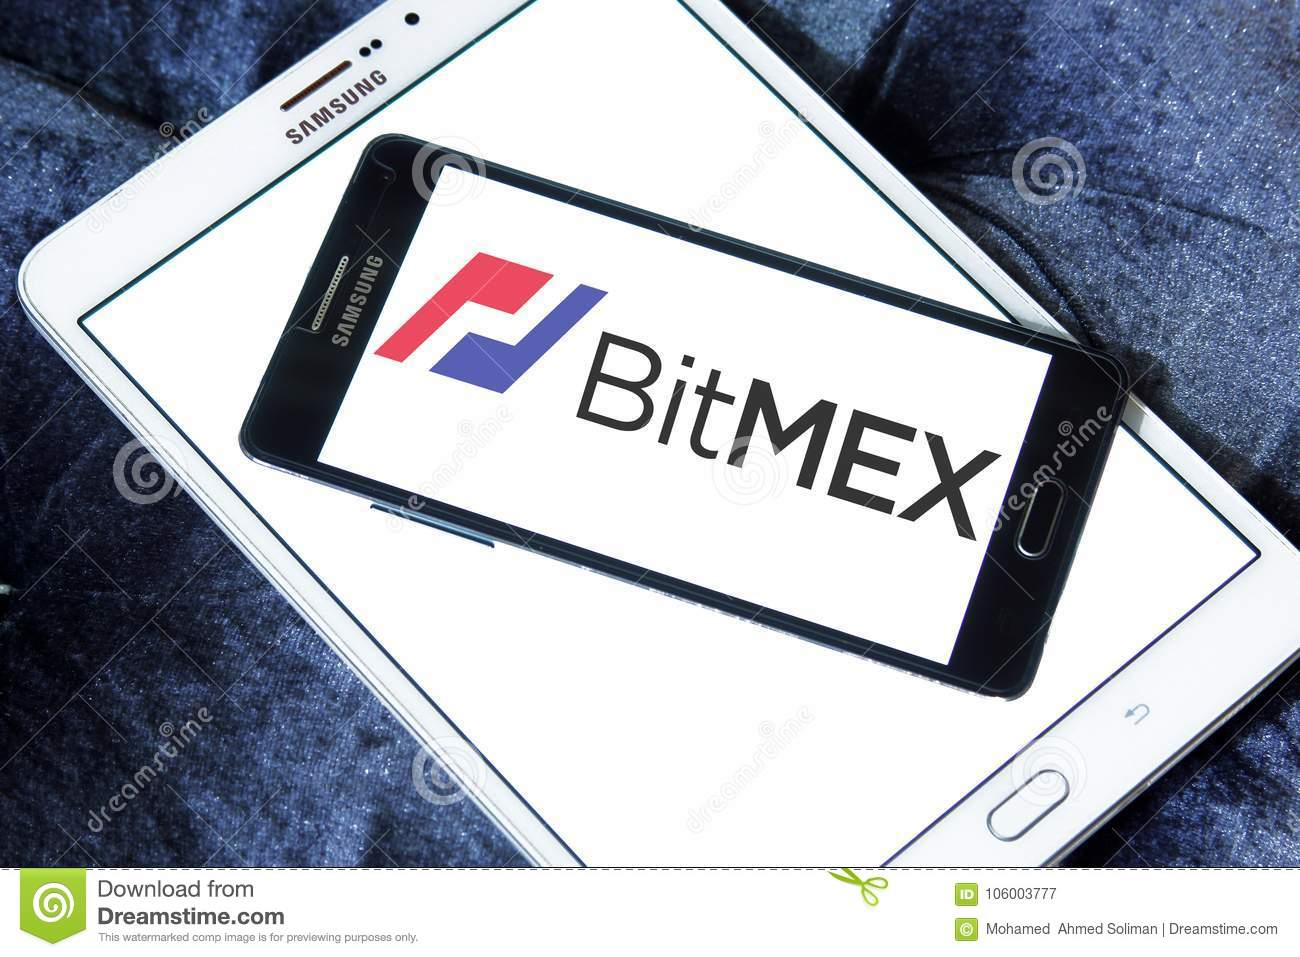 bitmex cryptocurrency exchange